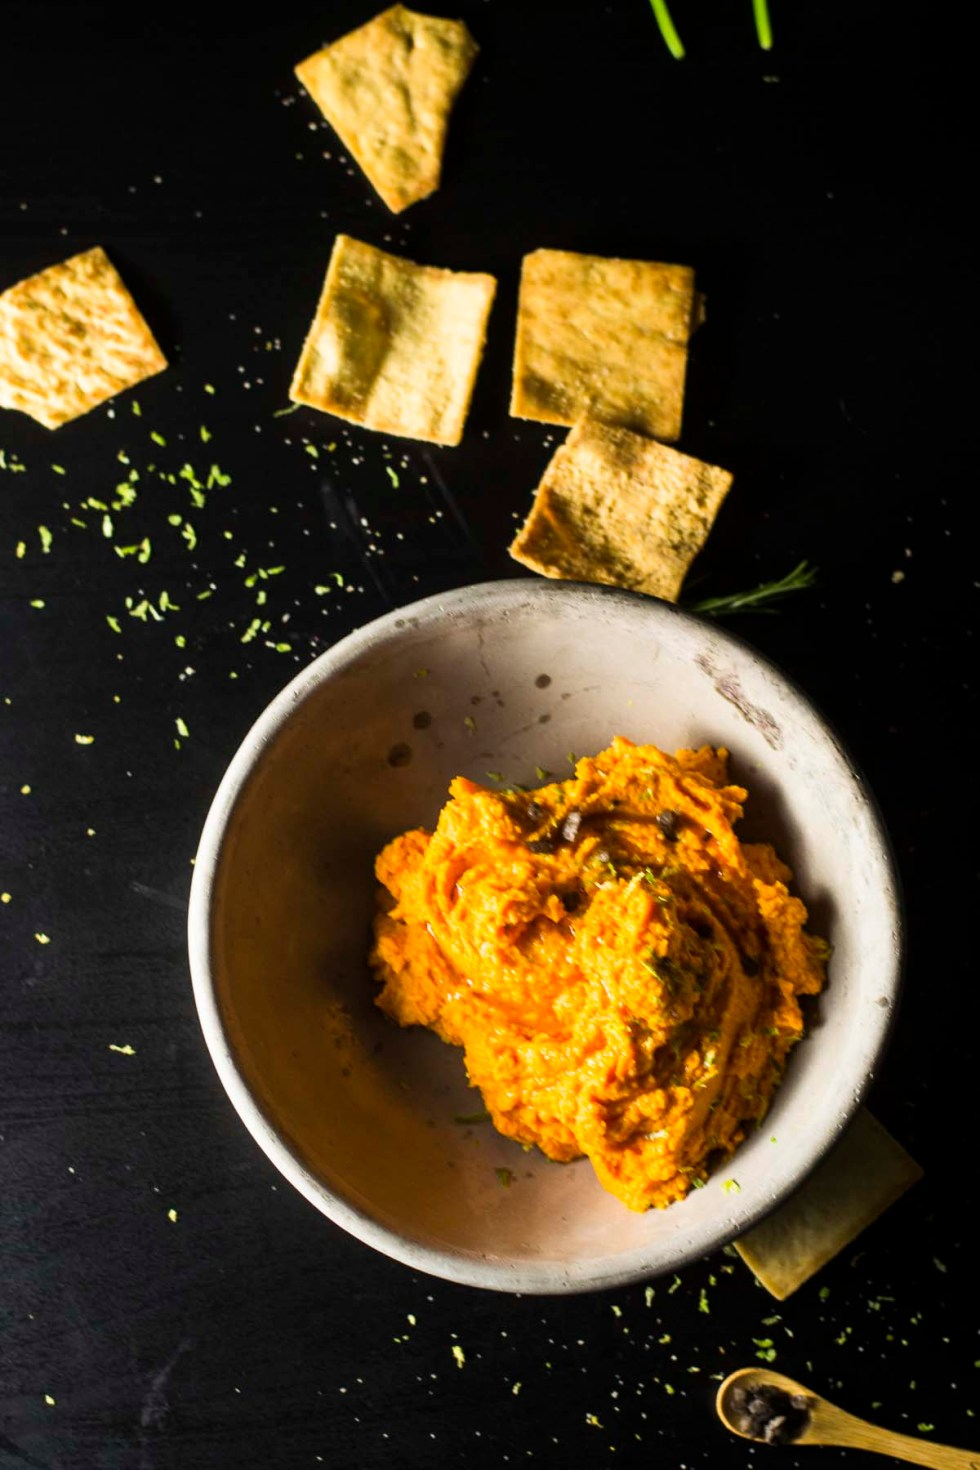 Carrot hummus in bowl with spoon and pita chips on table